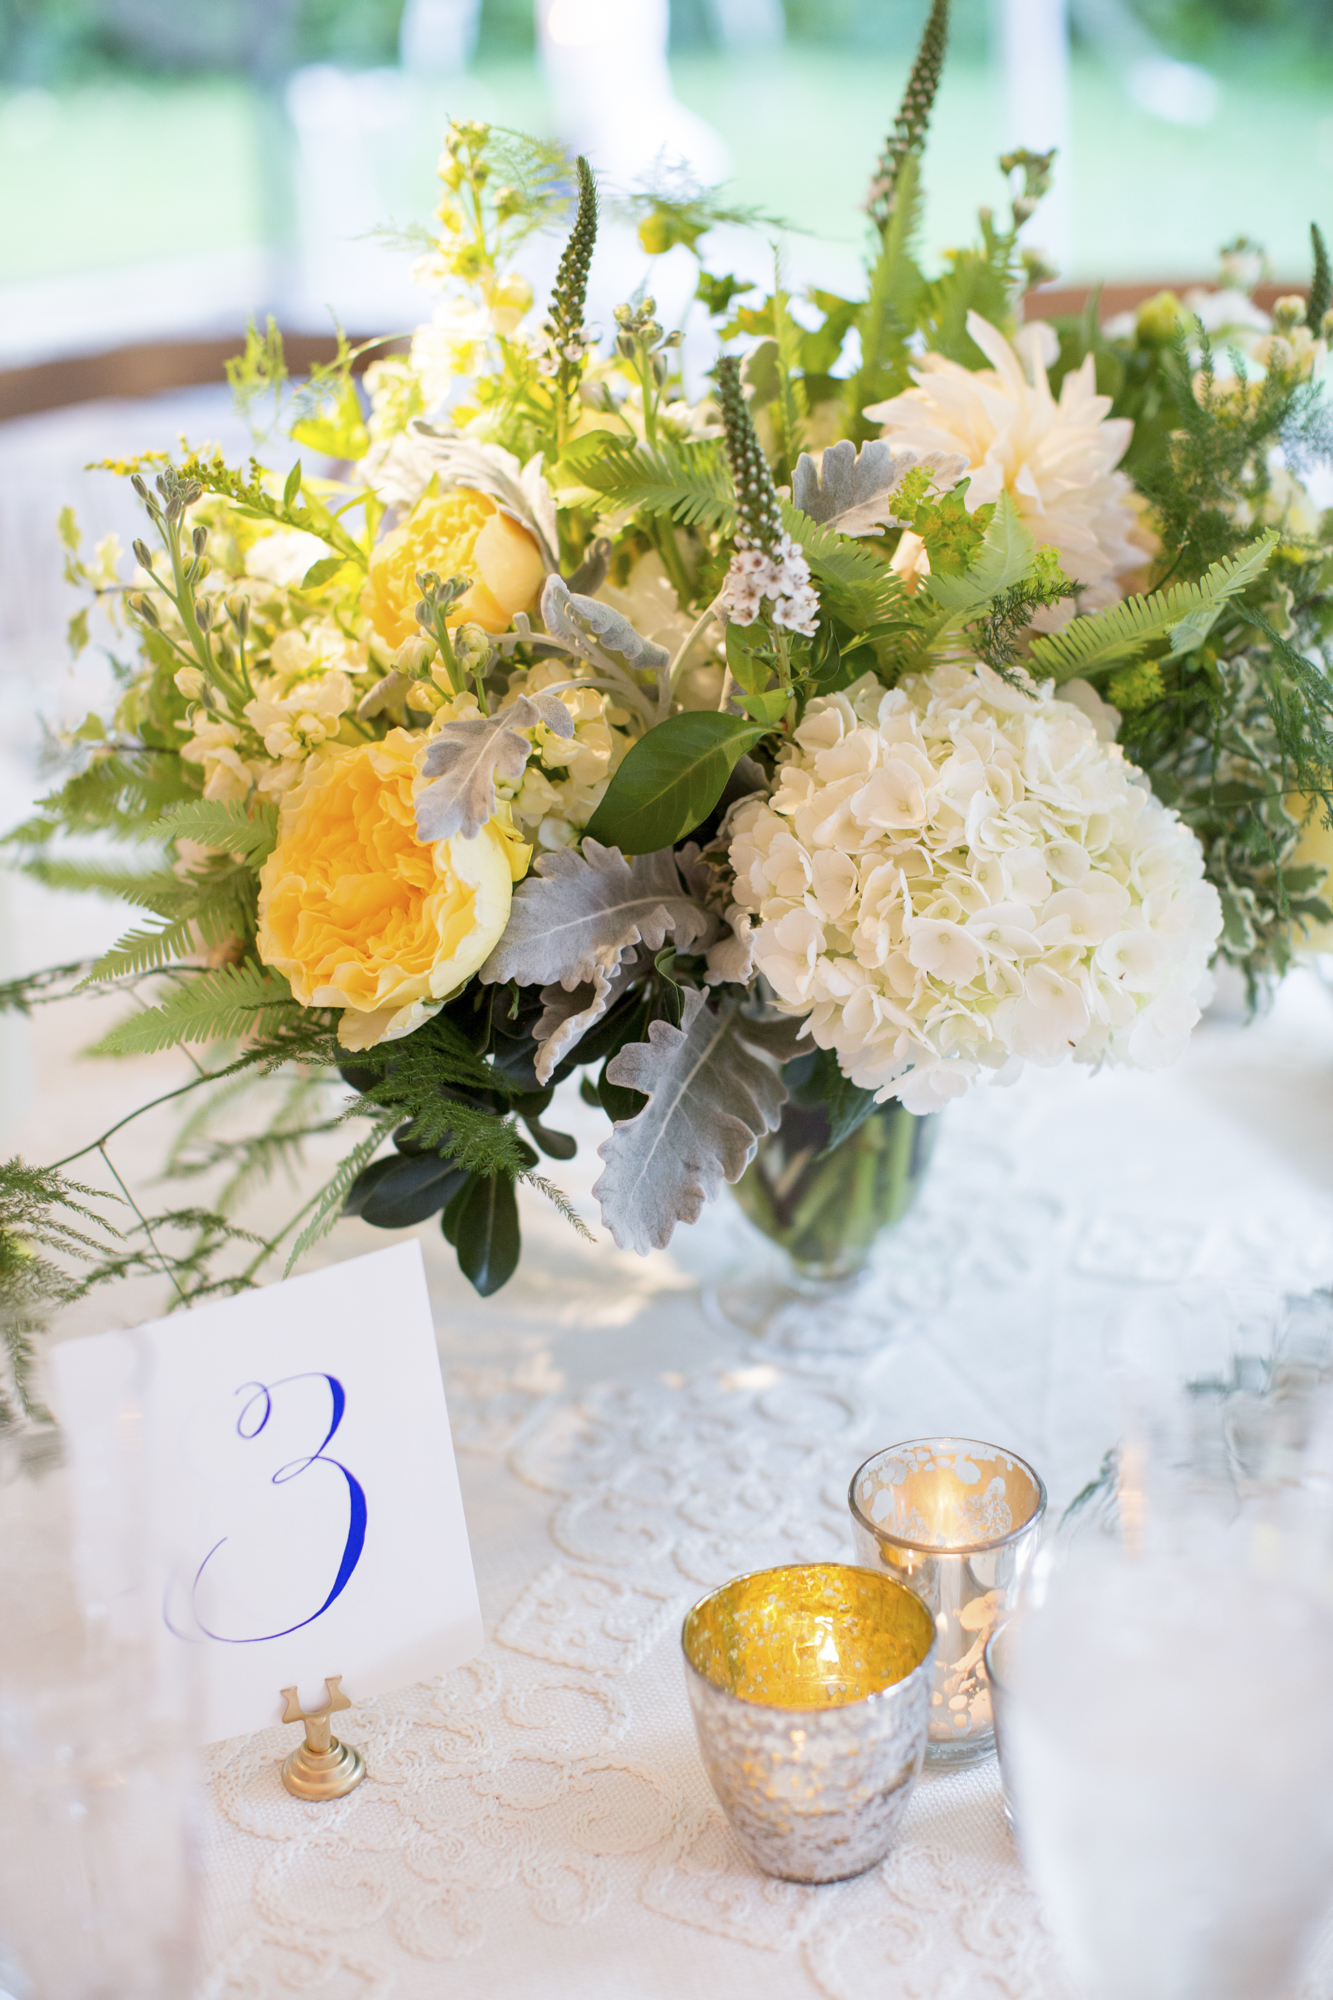 White, yellow and green centerpiece